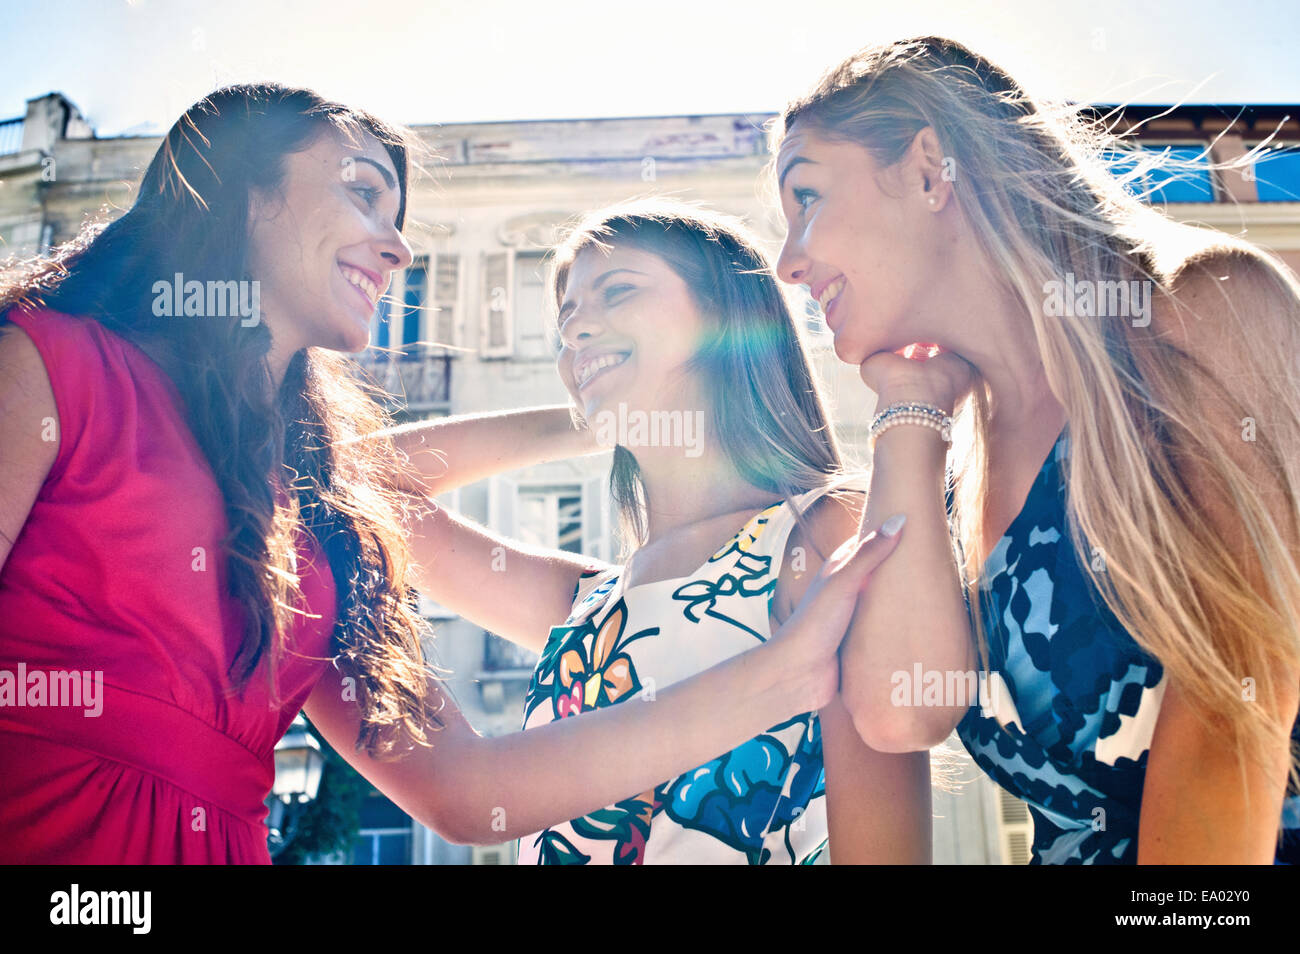 Three young female friends chatting on street, Cagliari, Sardinia, Italy - Stock Image